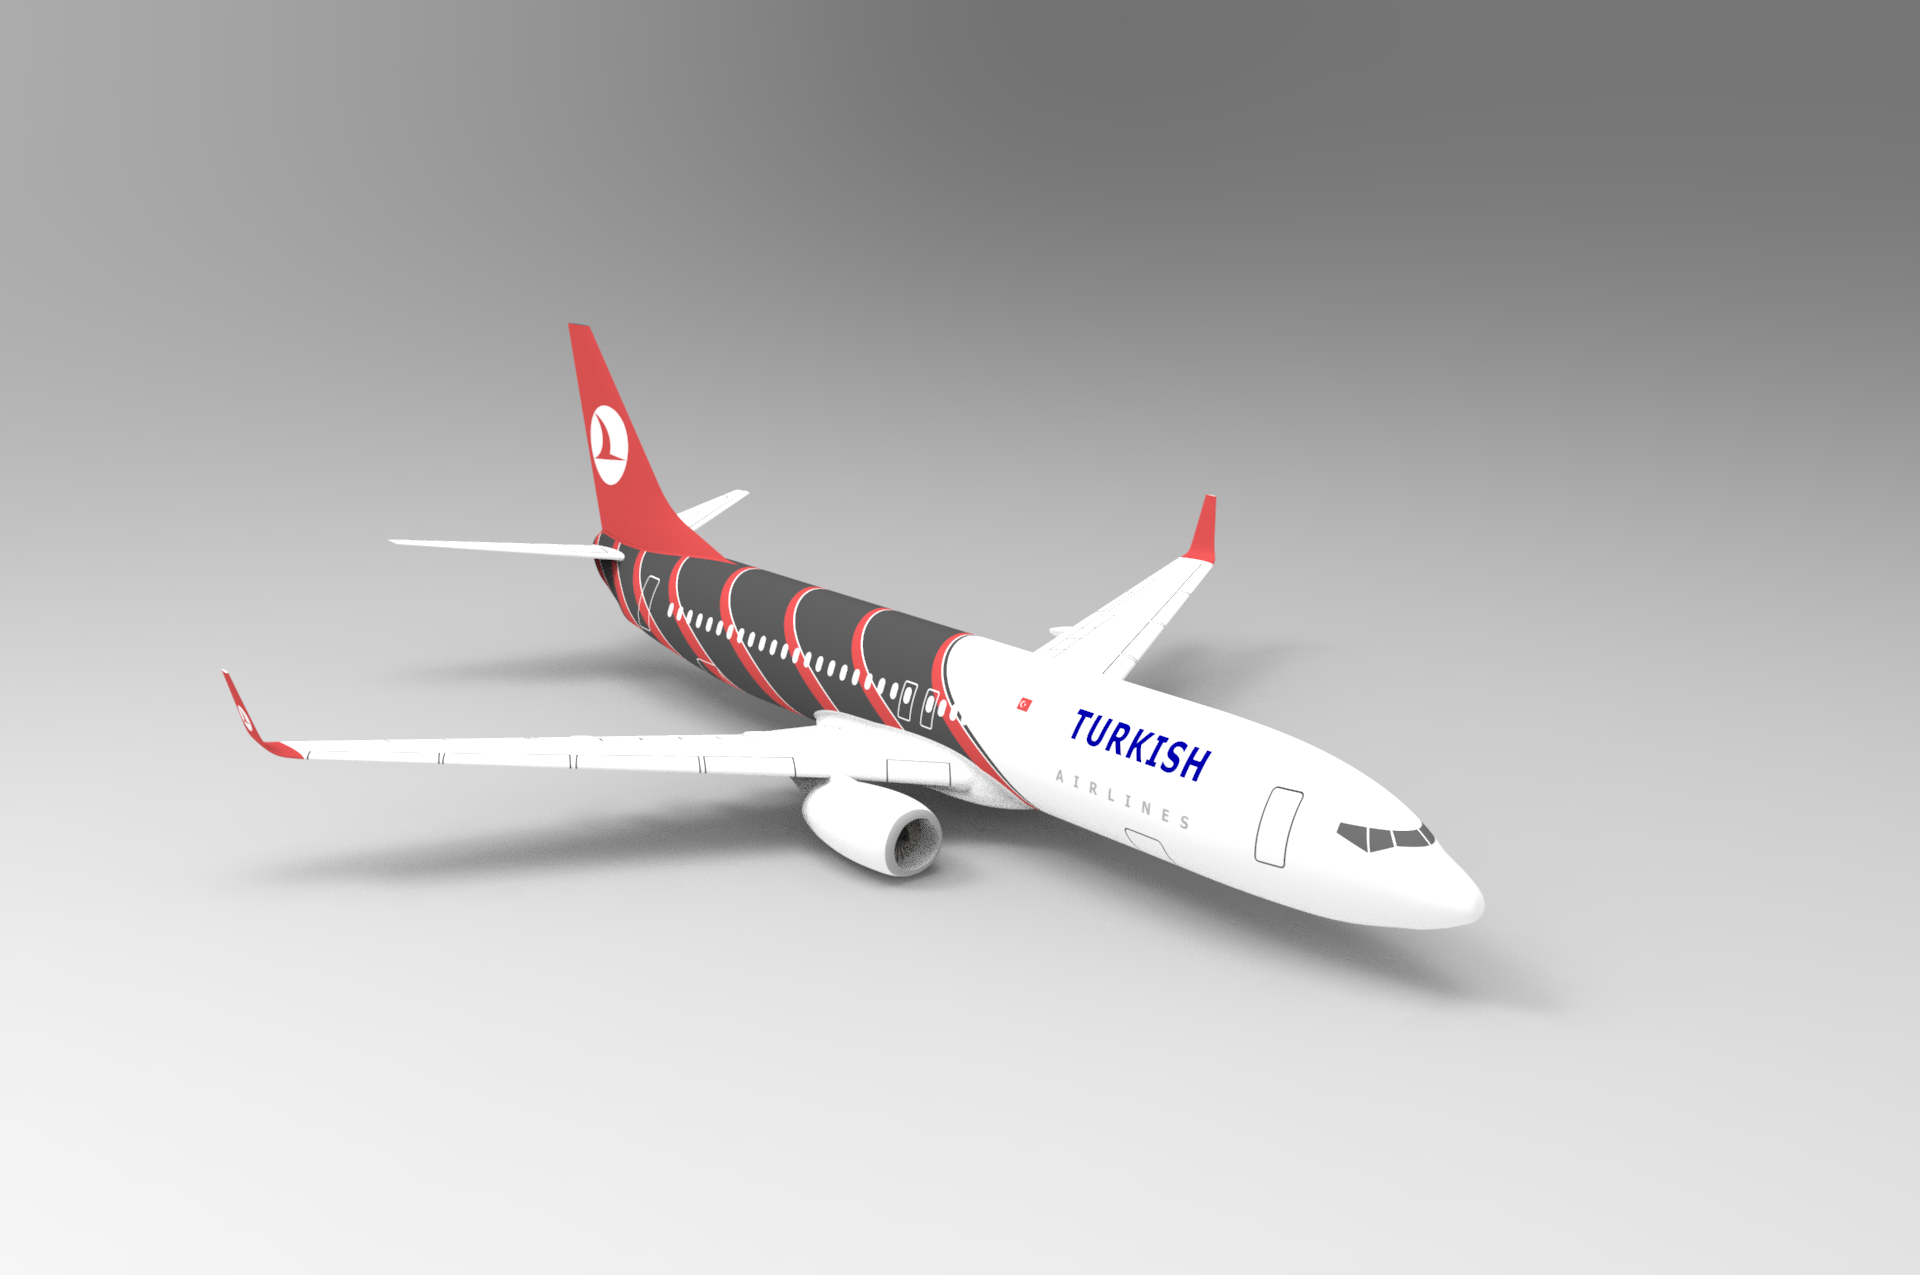 boeing 737 800 used solidworks for drawing and keyshot for rh pinterest com